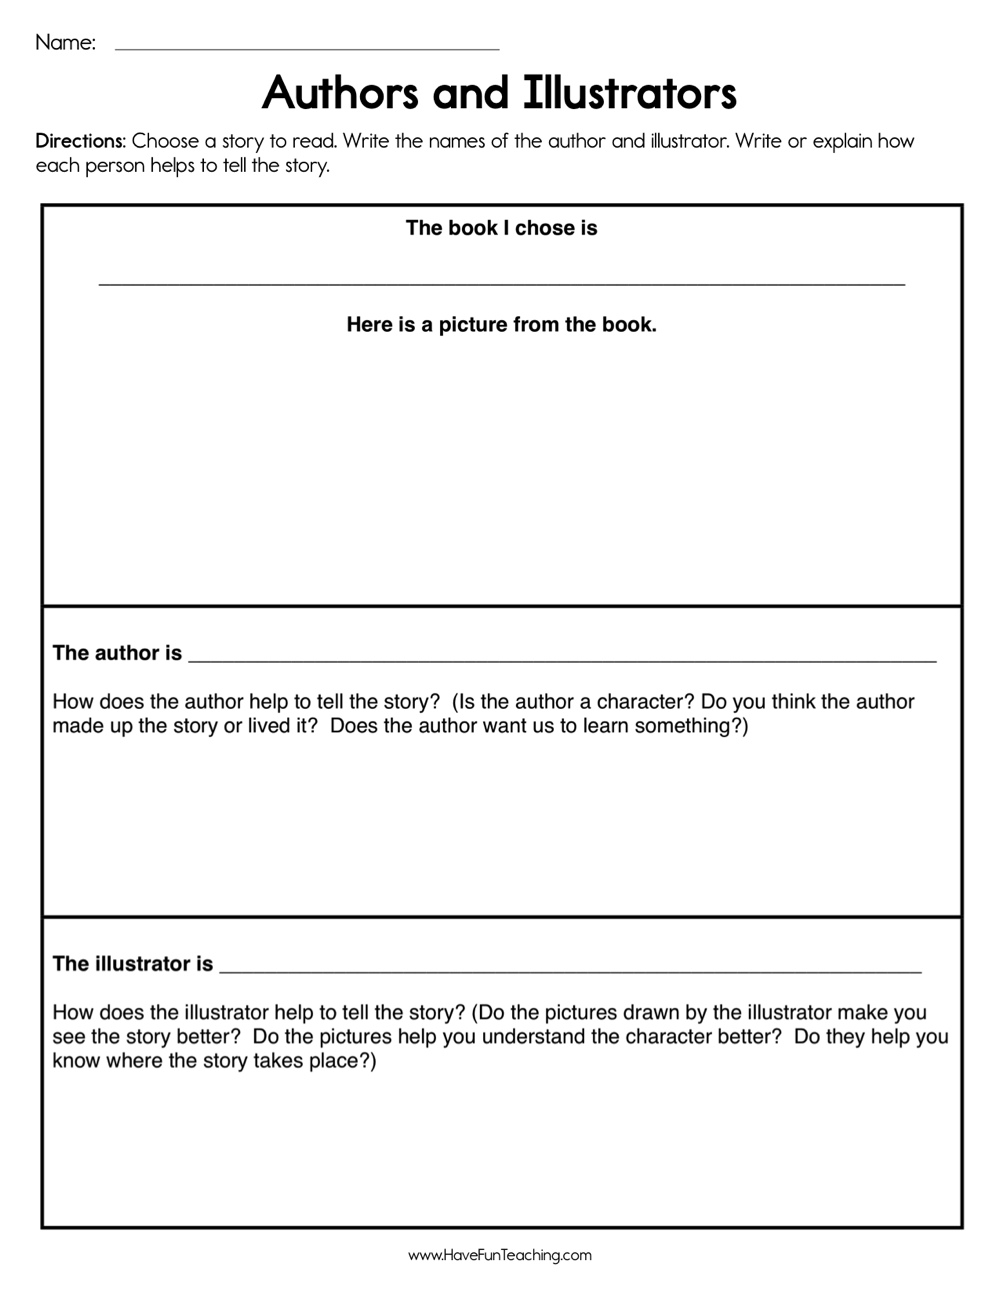 medium resolution of Author and Illustrators Worksheet • Have Fun Teaching